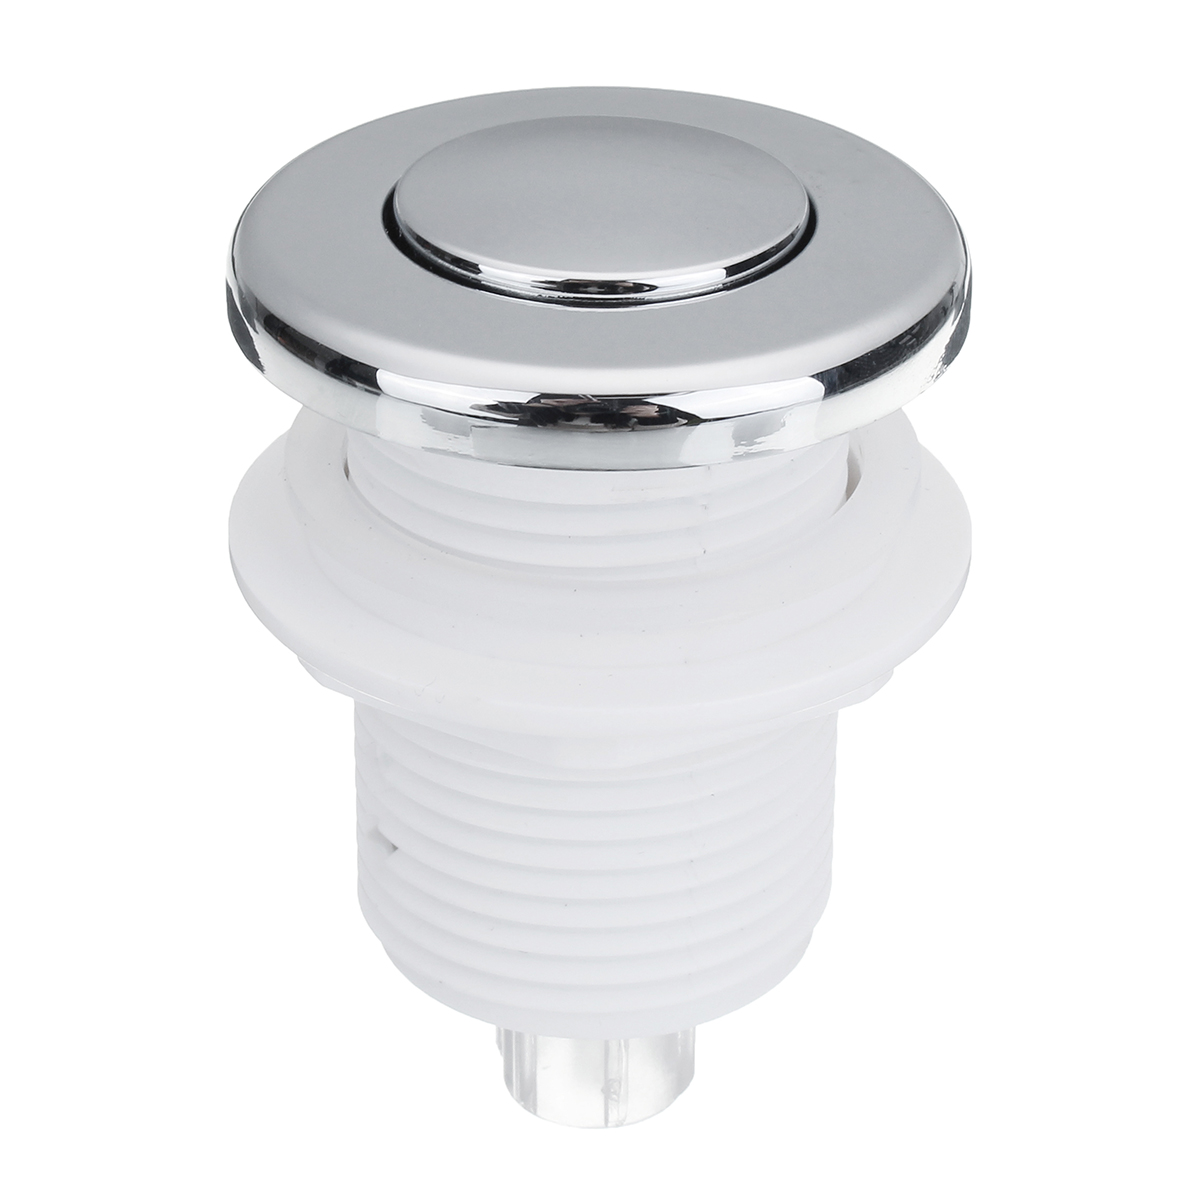 1PCS 32mm On Off Push Air Switch Button For Bathtub Spa Waste Garbage Disposal Whirlpool Pneumatic Switch